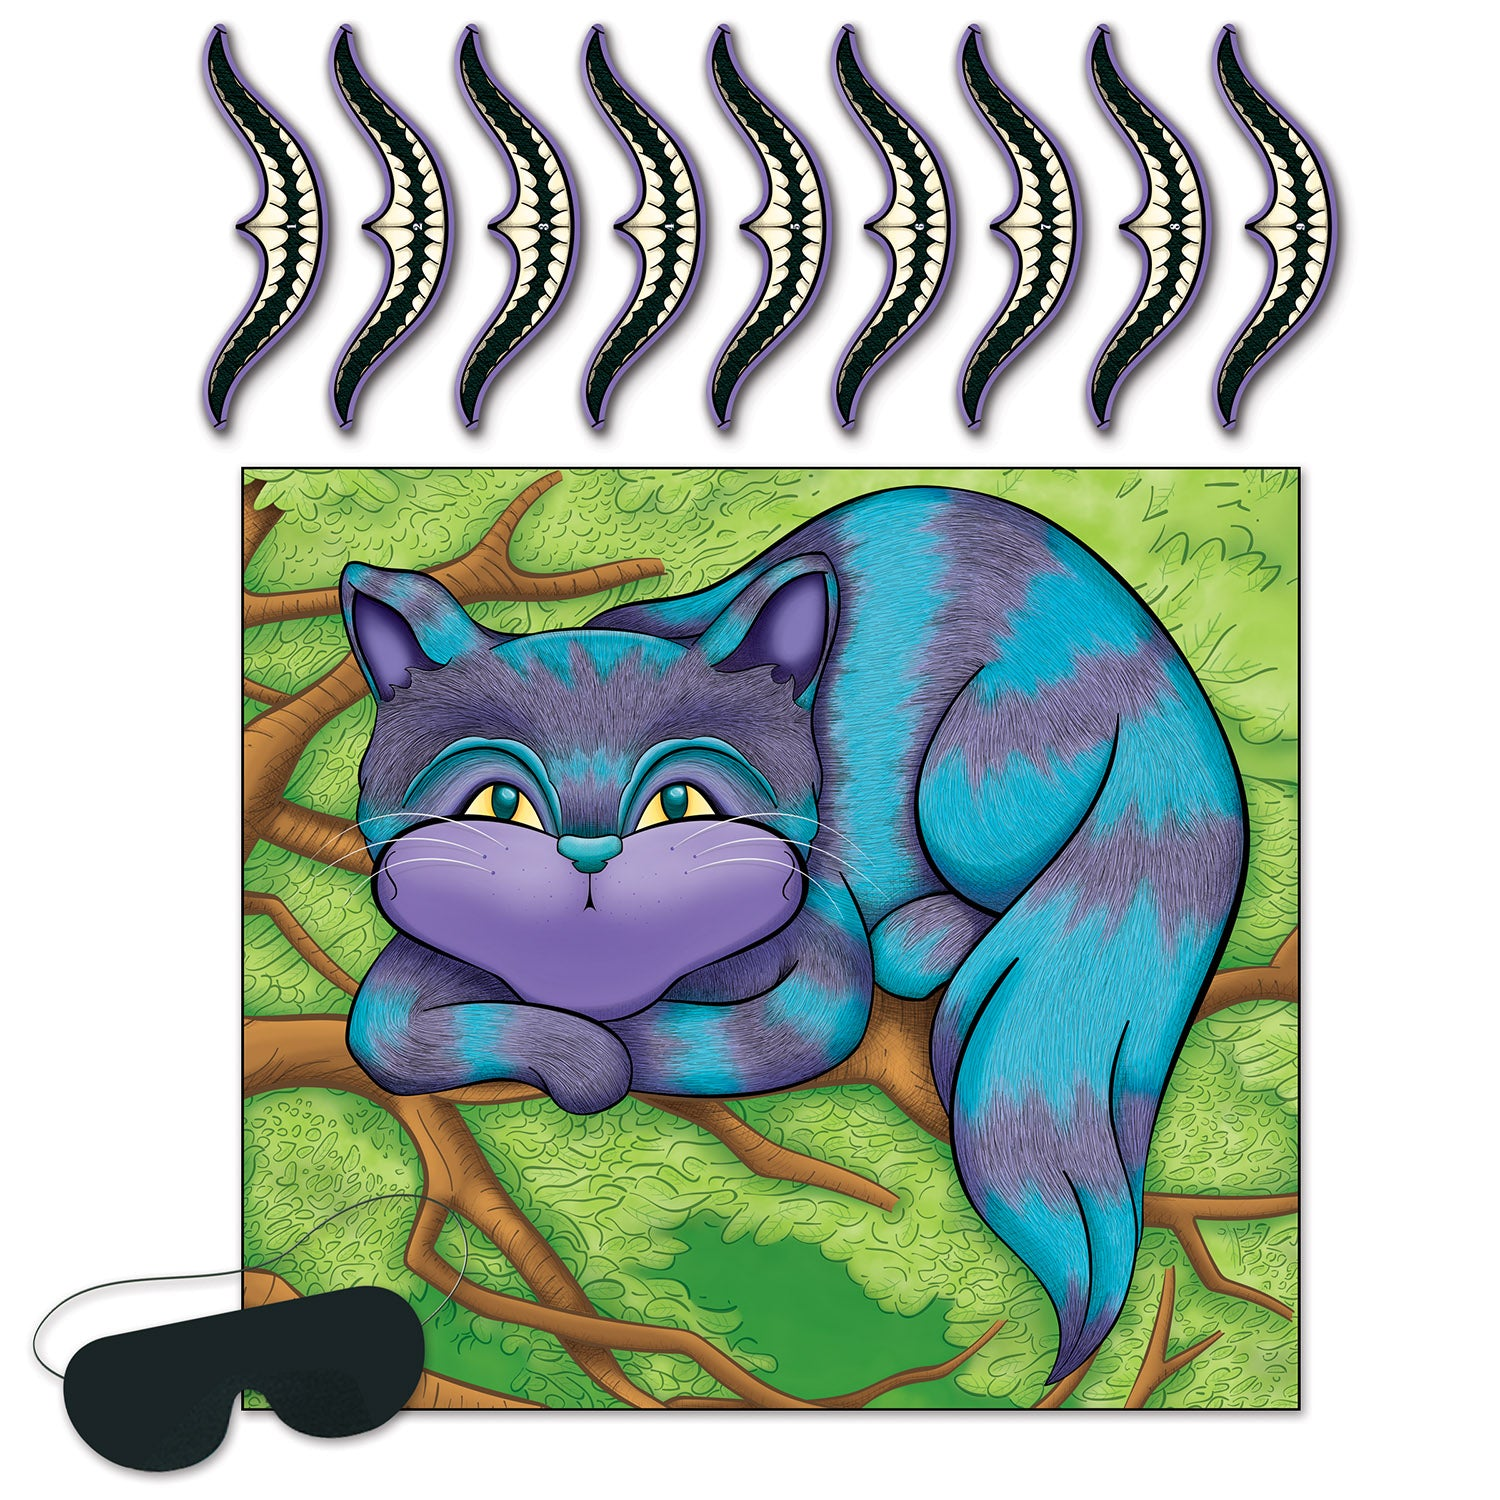 Pin The Smile On The Cheshire Cat Game by Beistle - Alice In Wonderland Theme Decorations